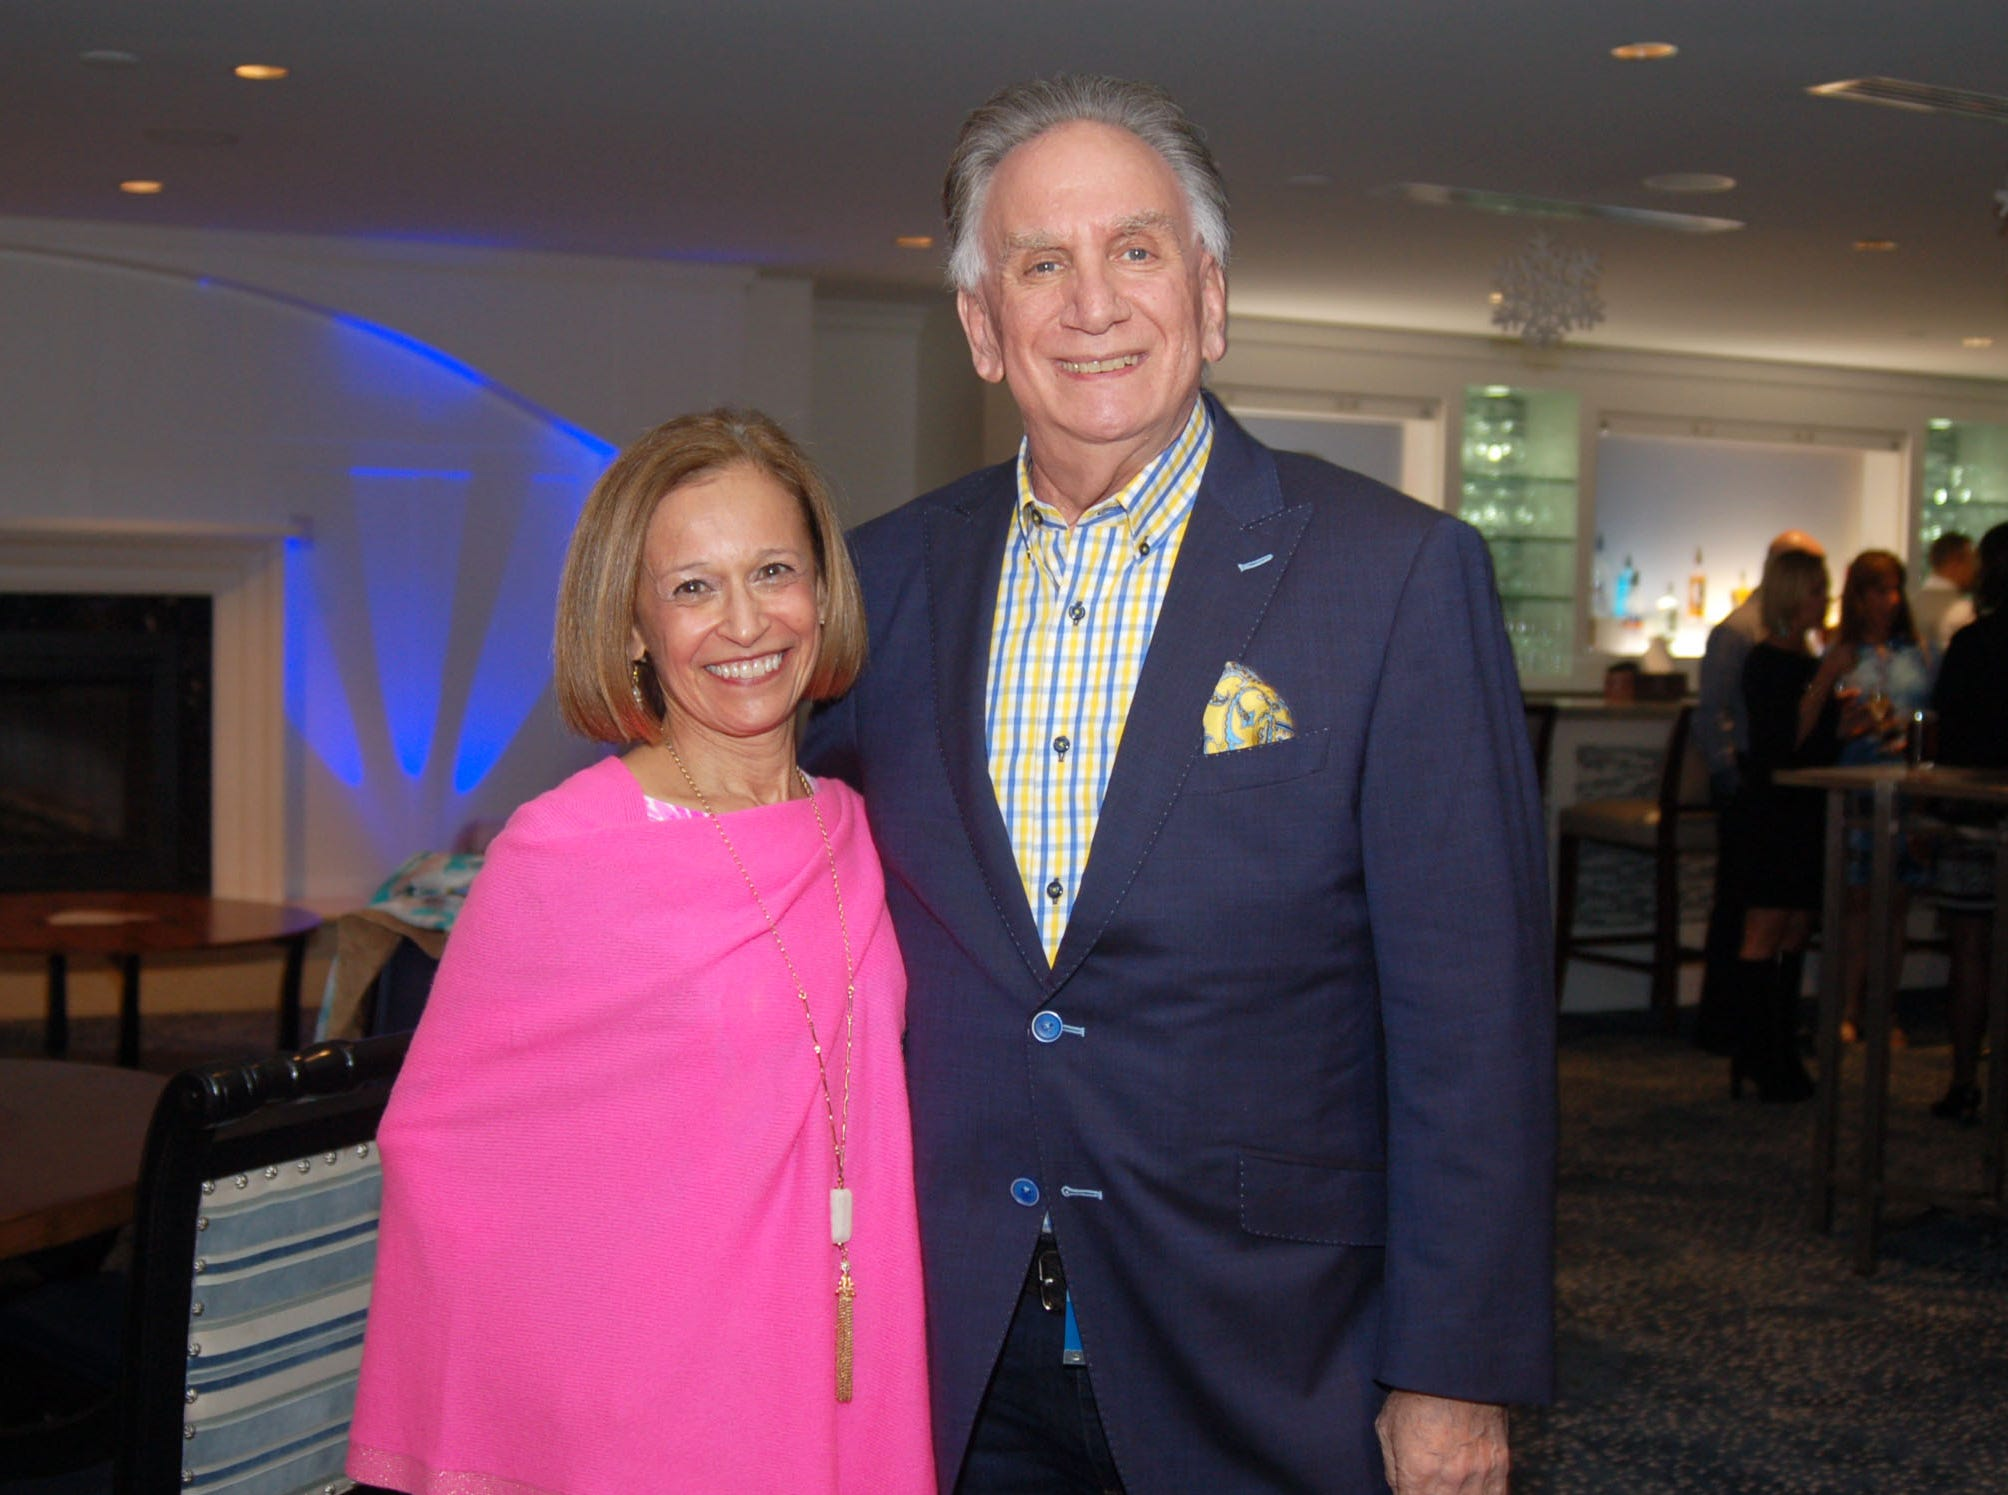 Donna and Bob Goldfarb at Admirals Cove in Jupiter for the VIP kick-off reception for the American Cancer Society's 2019 Celestial Gala.